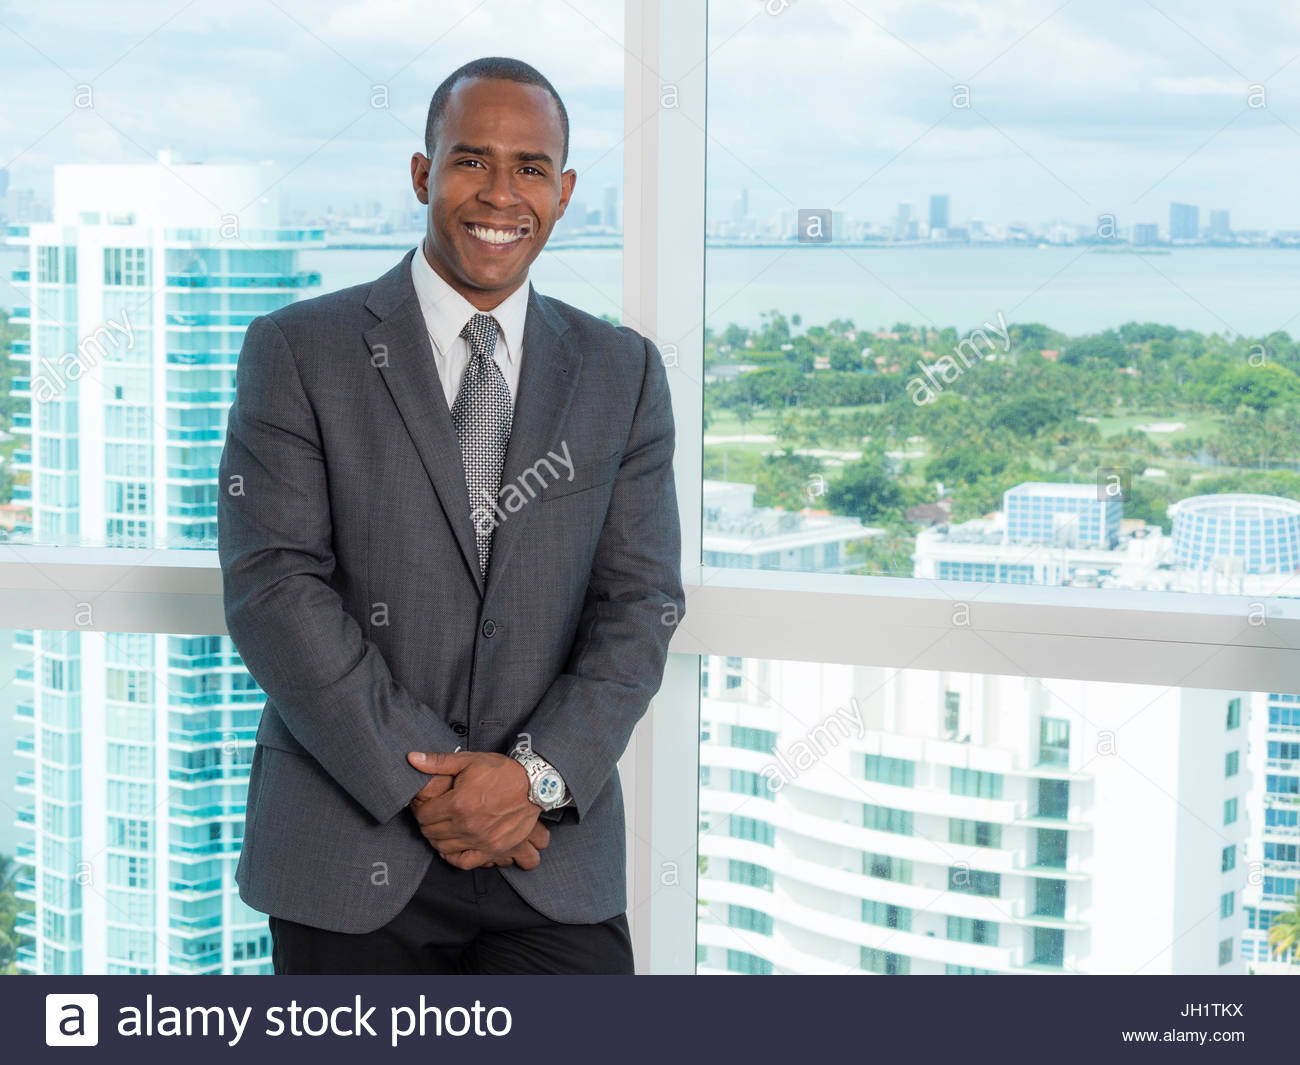 African descent businessman man standing in office building. More buildings can be seen in background - Stock Image